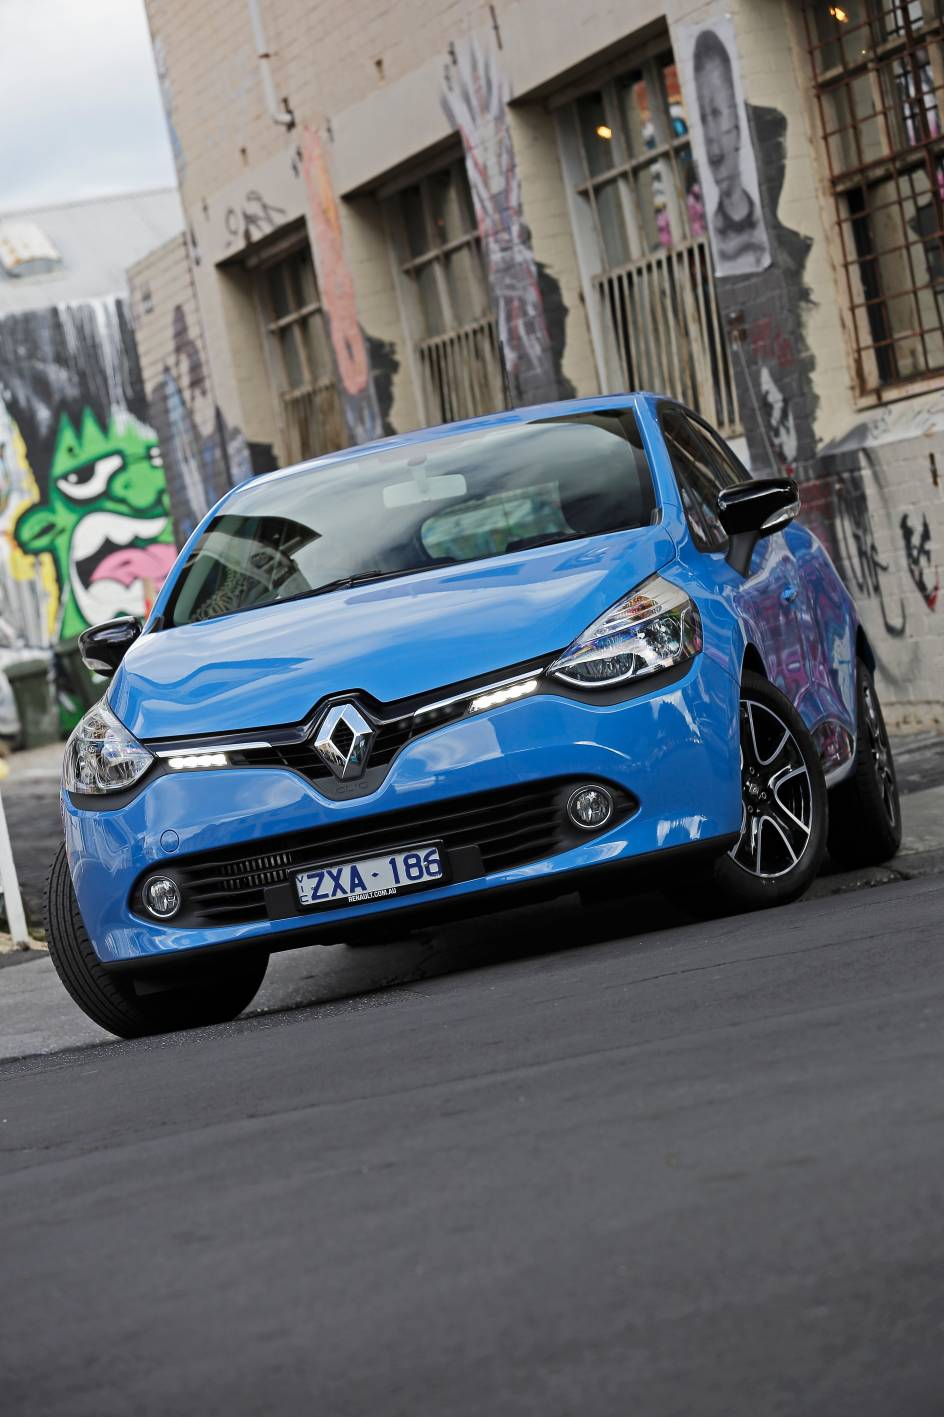 2014 Renault Clio Expression (click to enlarge)